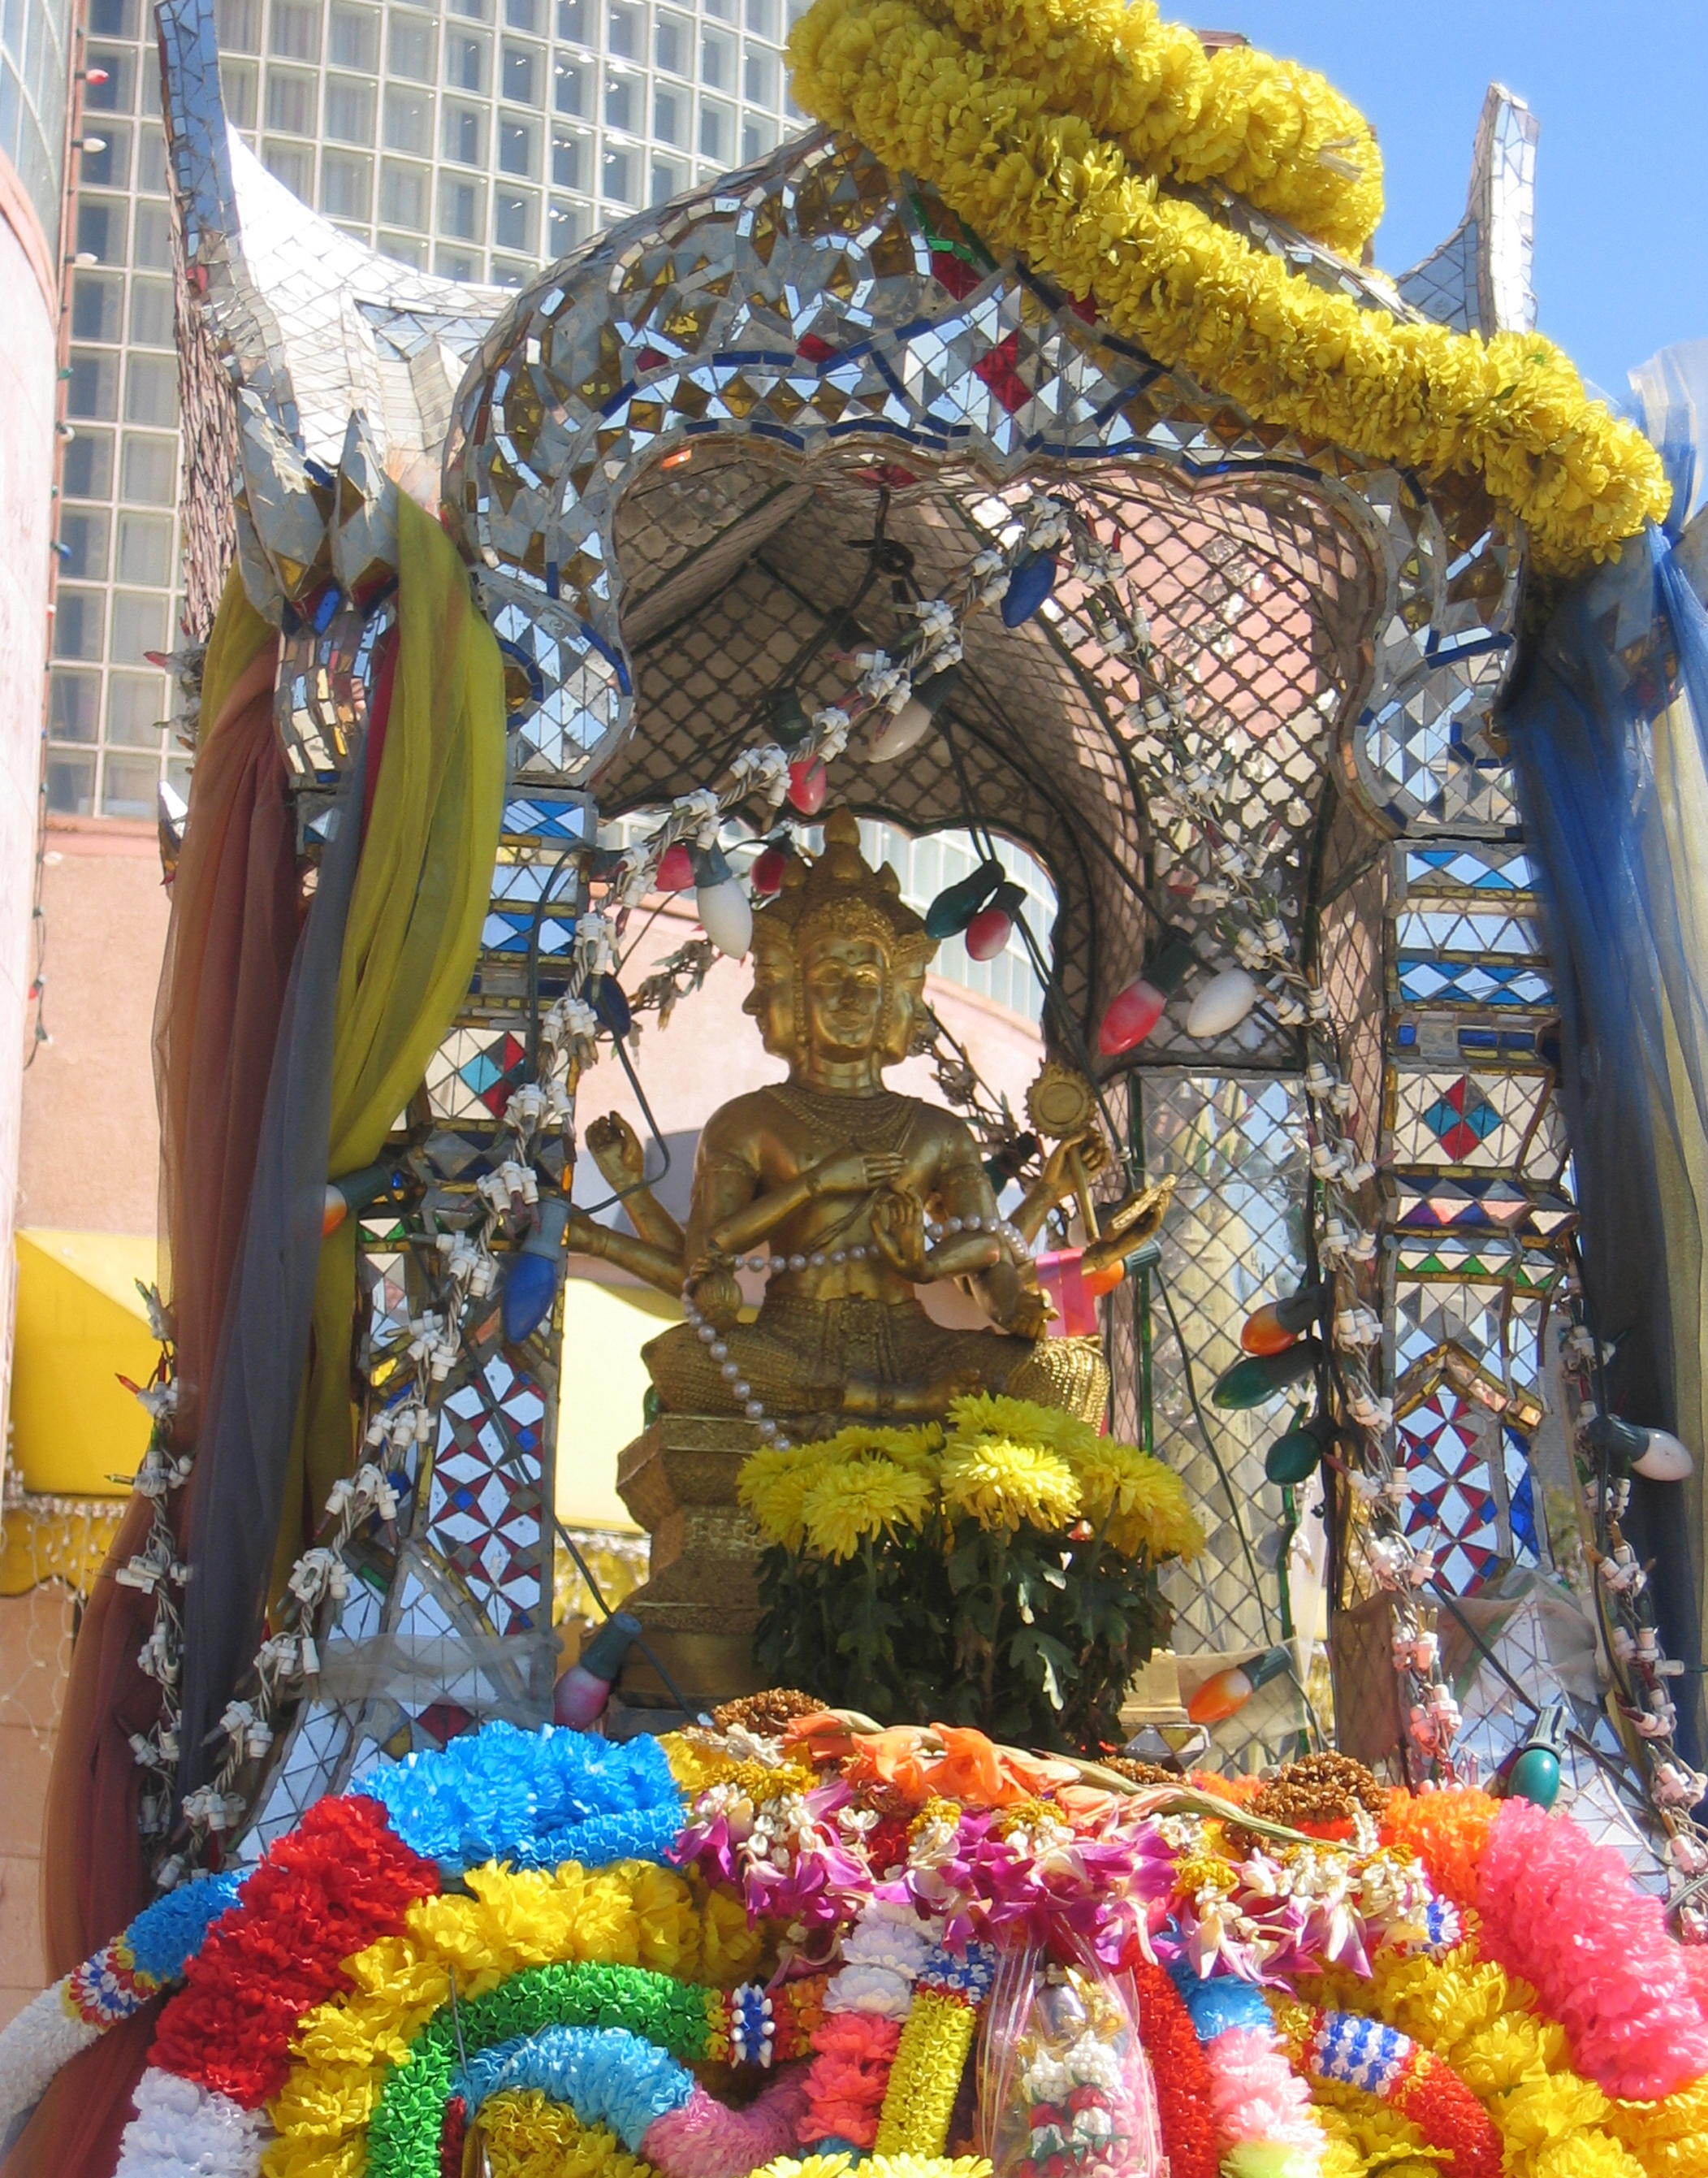 A traditional Thai Spirit House receives gifts, garlands, and prayers from the Thai community. This spirit house, a mosaic of glass and tile, is one of two located within Thai Town in Los Angeles.